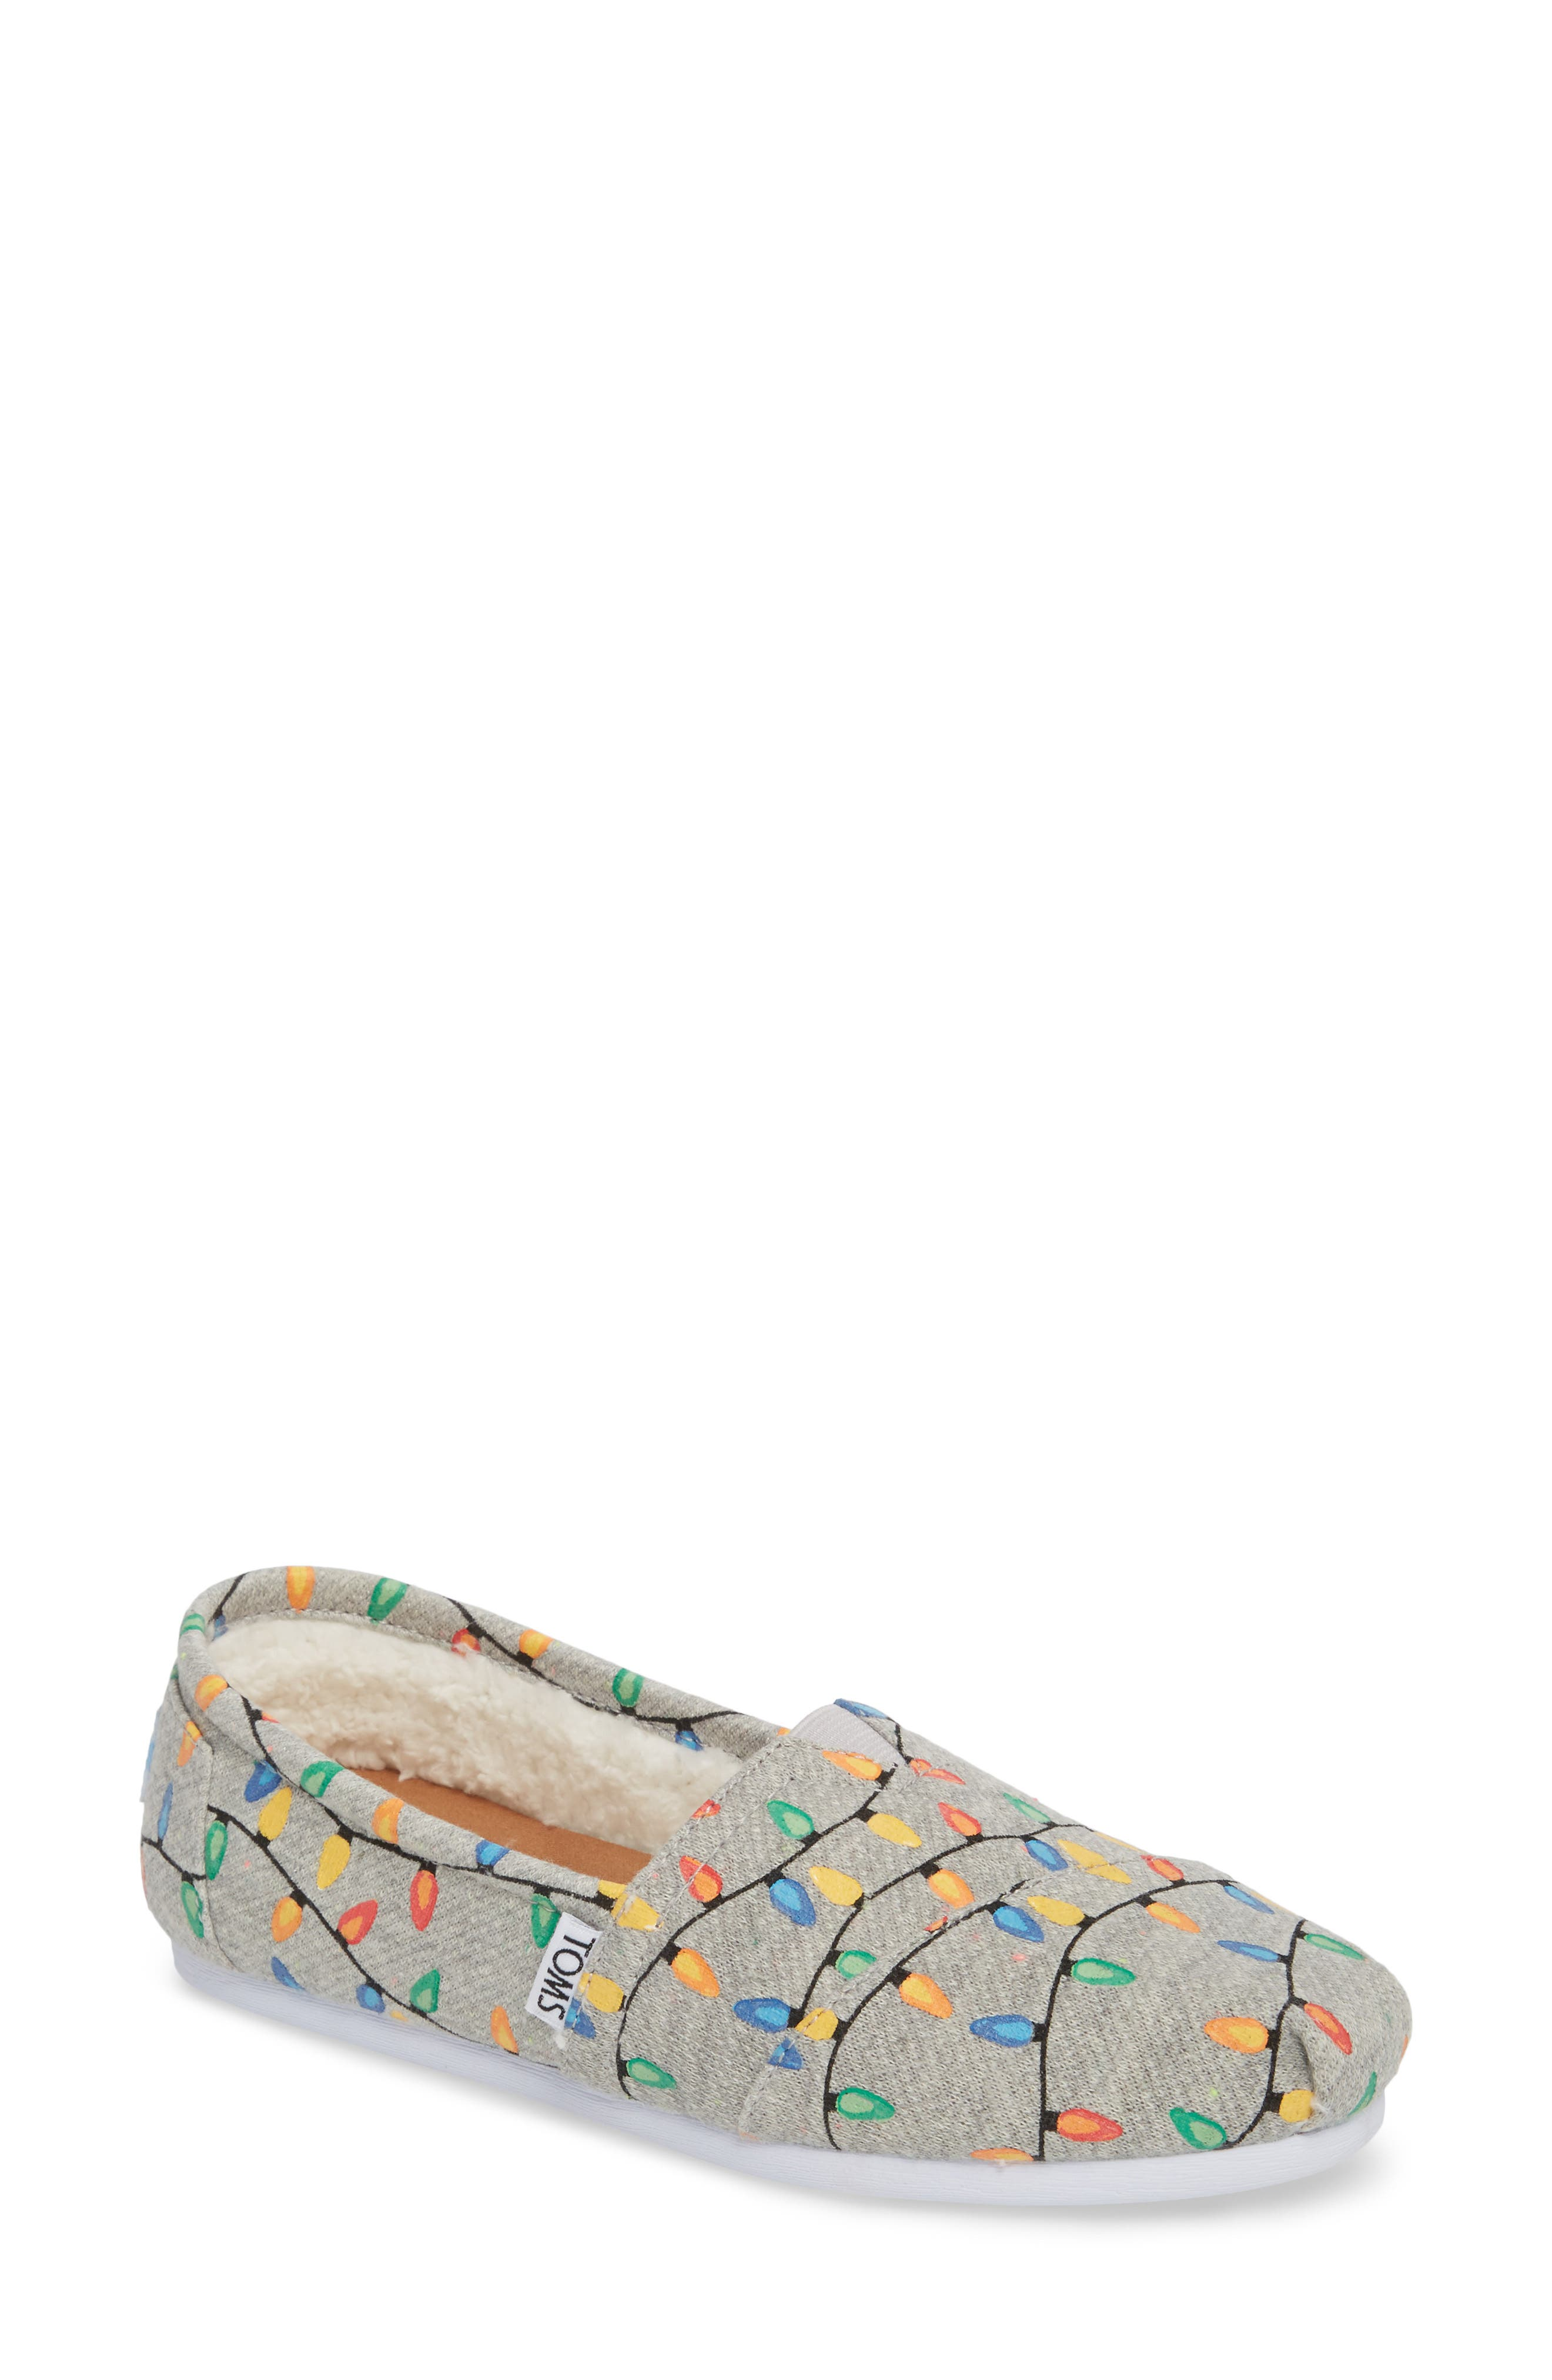 Main Image - TOMS 'Classic Knit' Slip-On (Women)